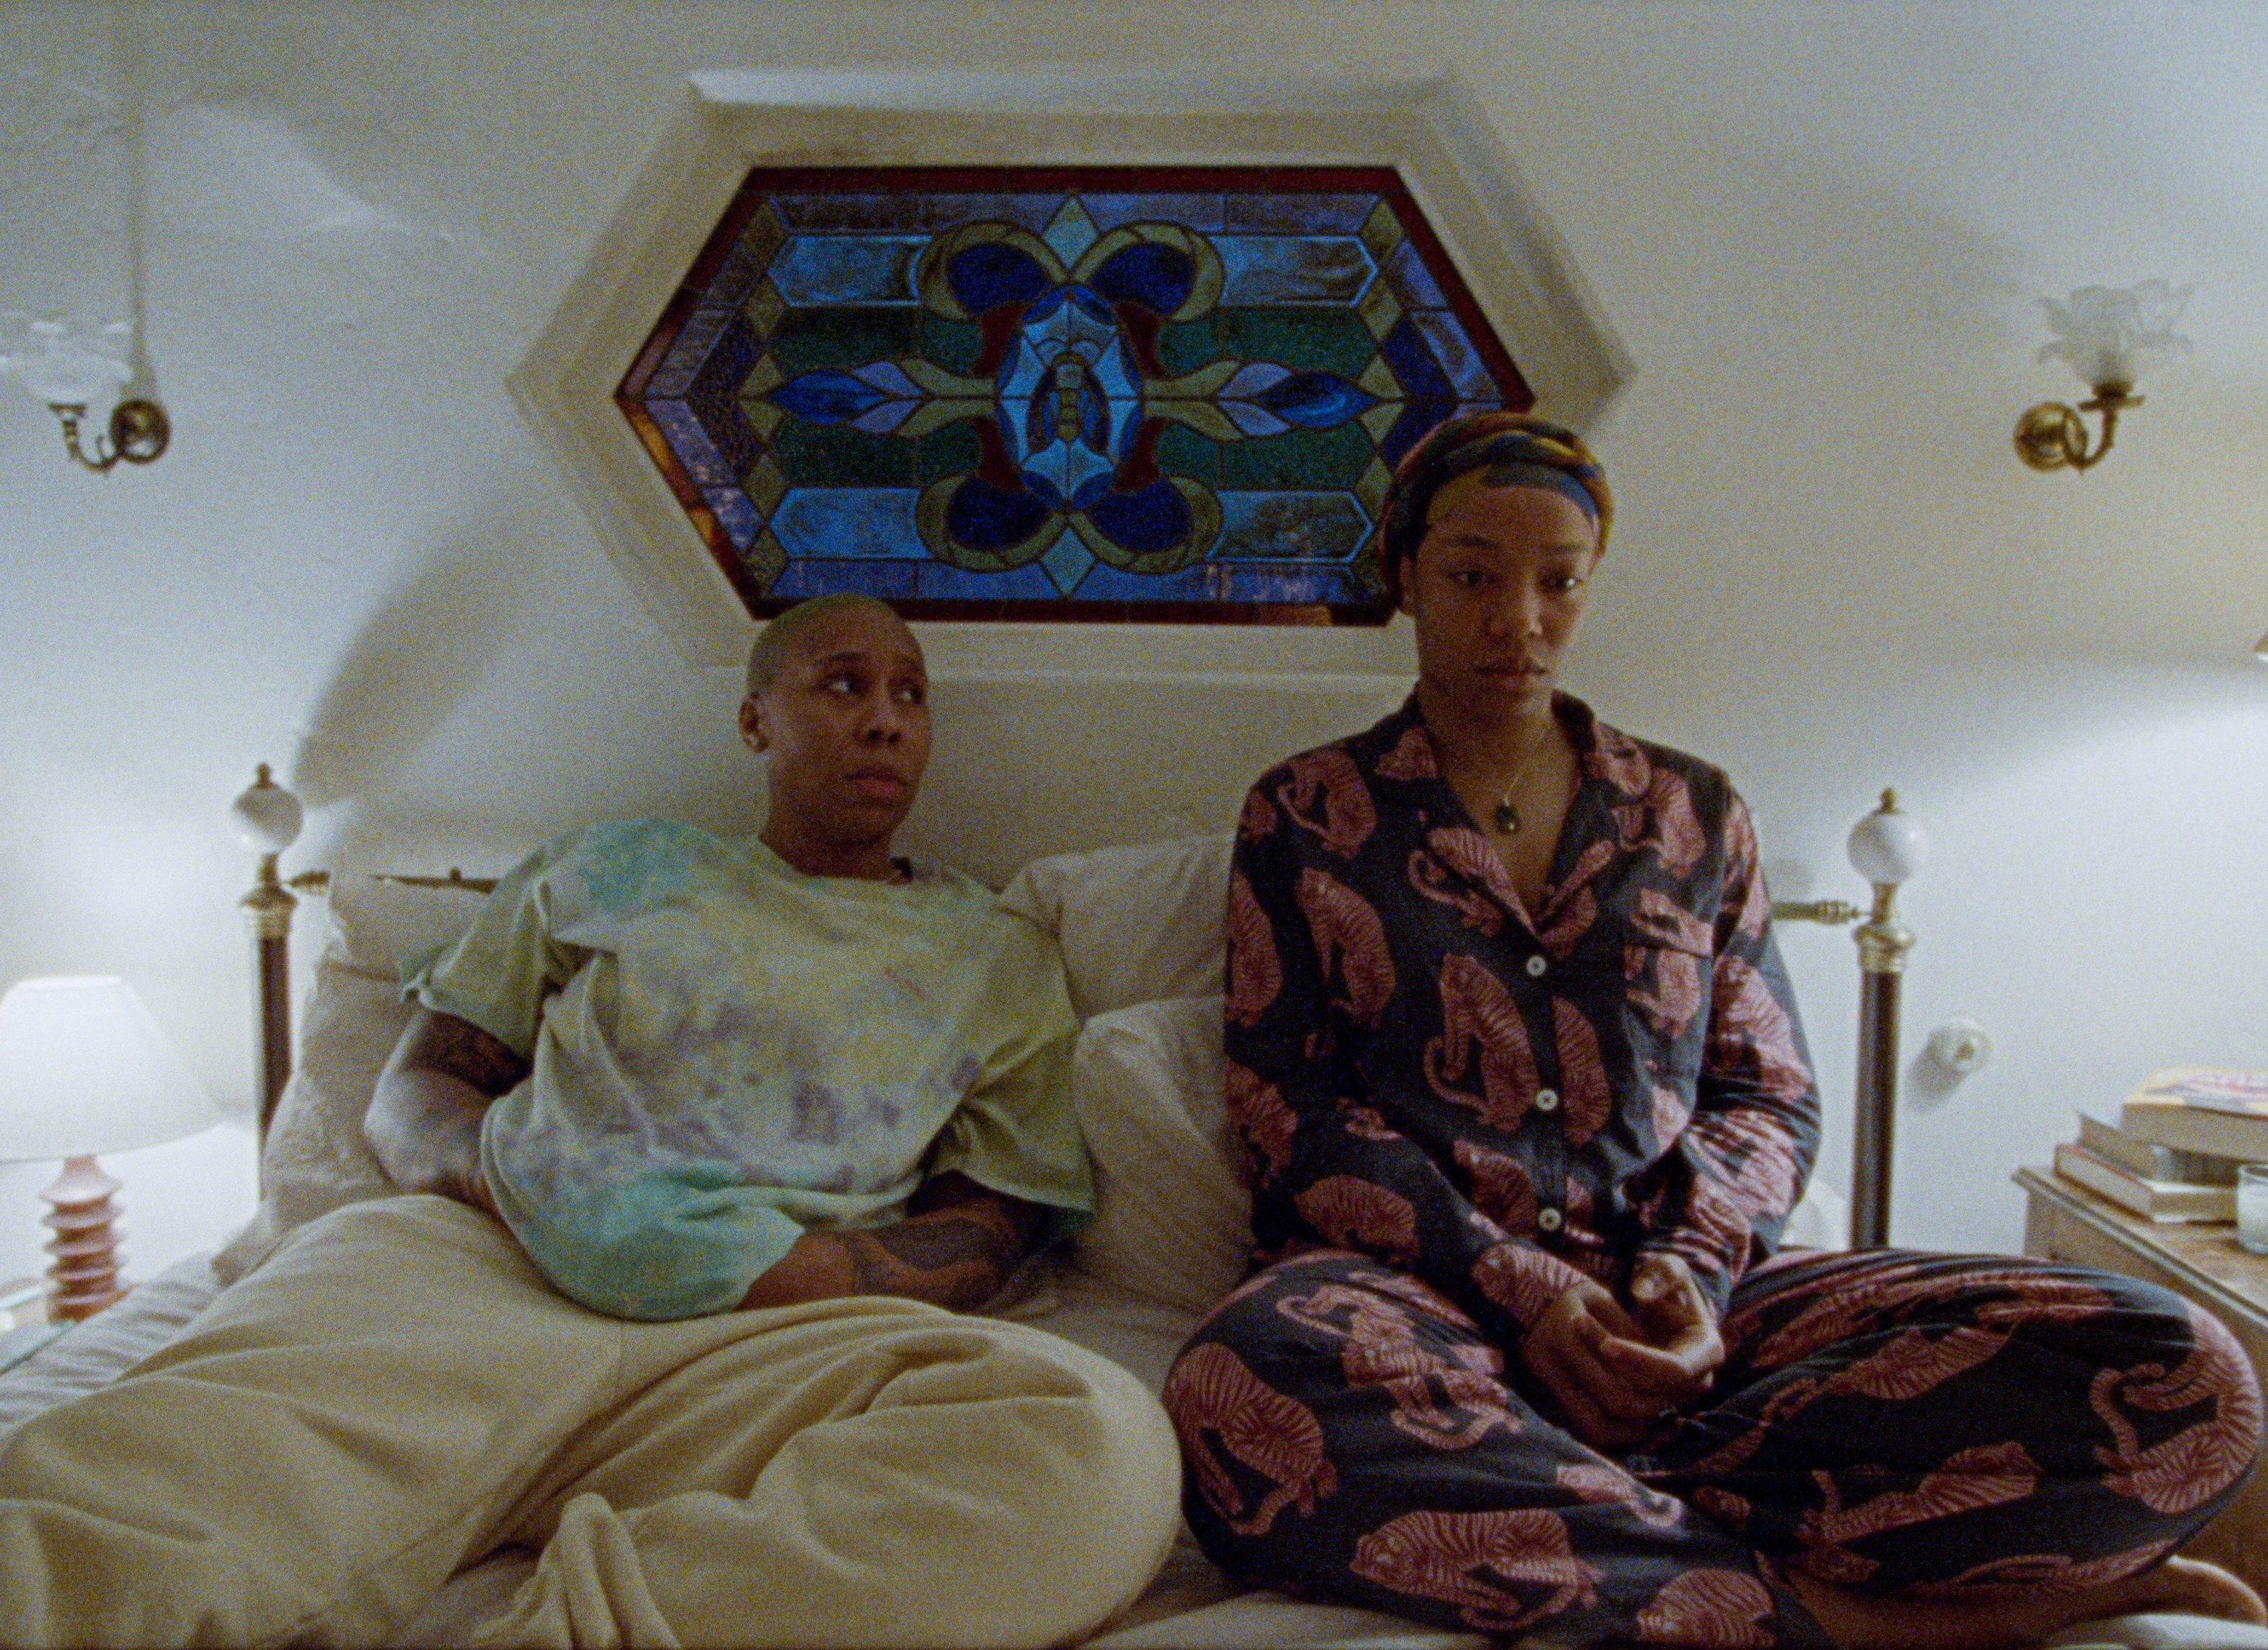 Lena Waithe in bed in a scene from Master of None